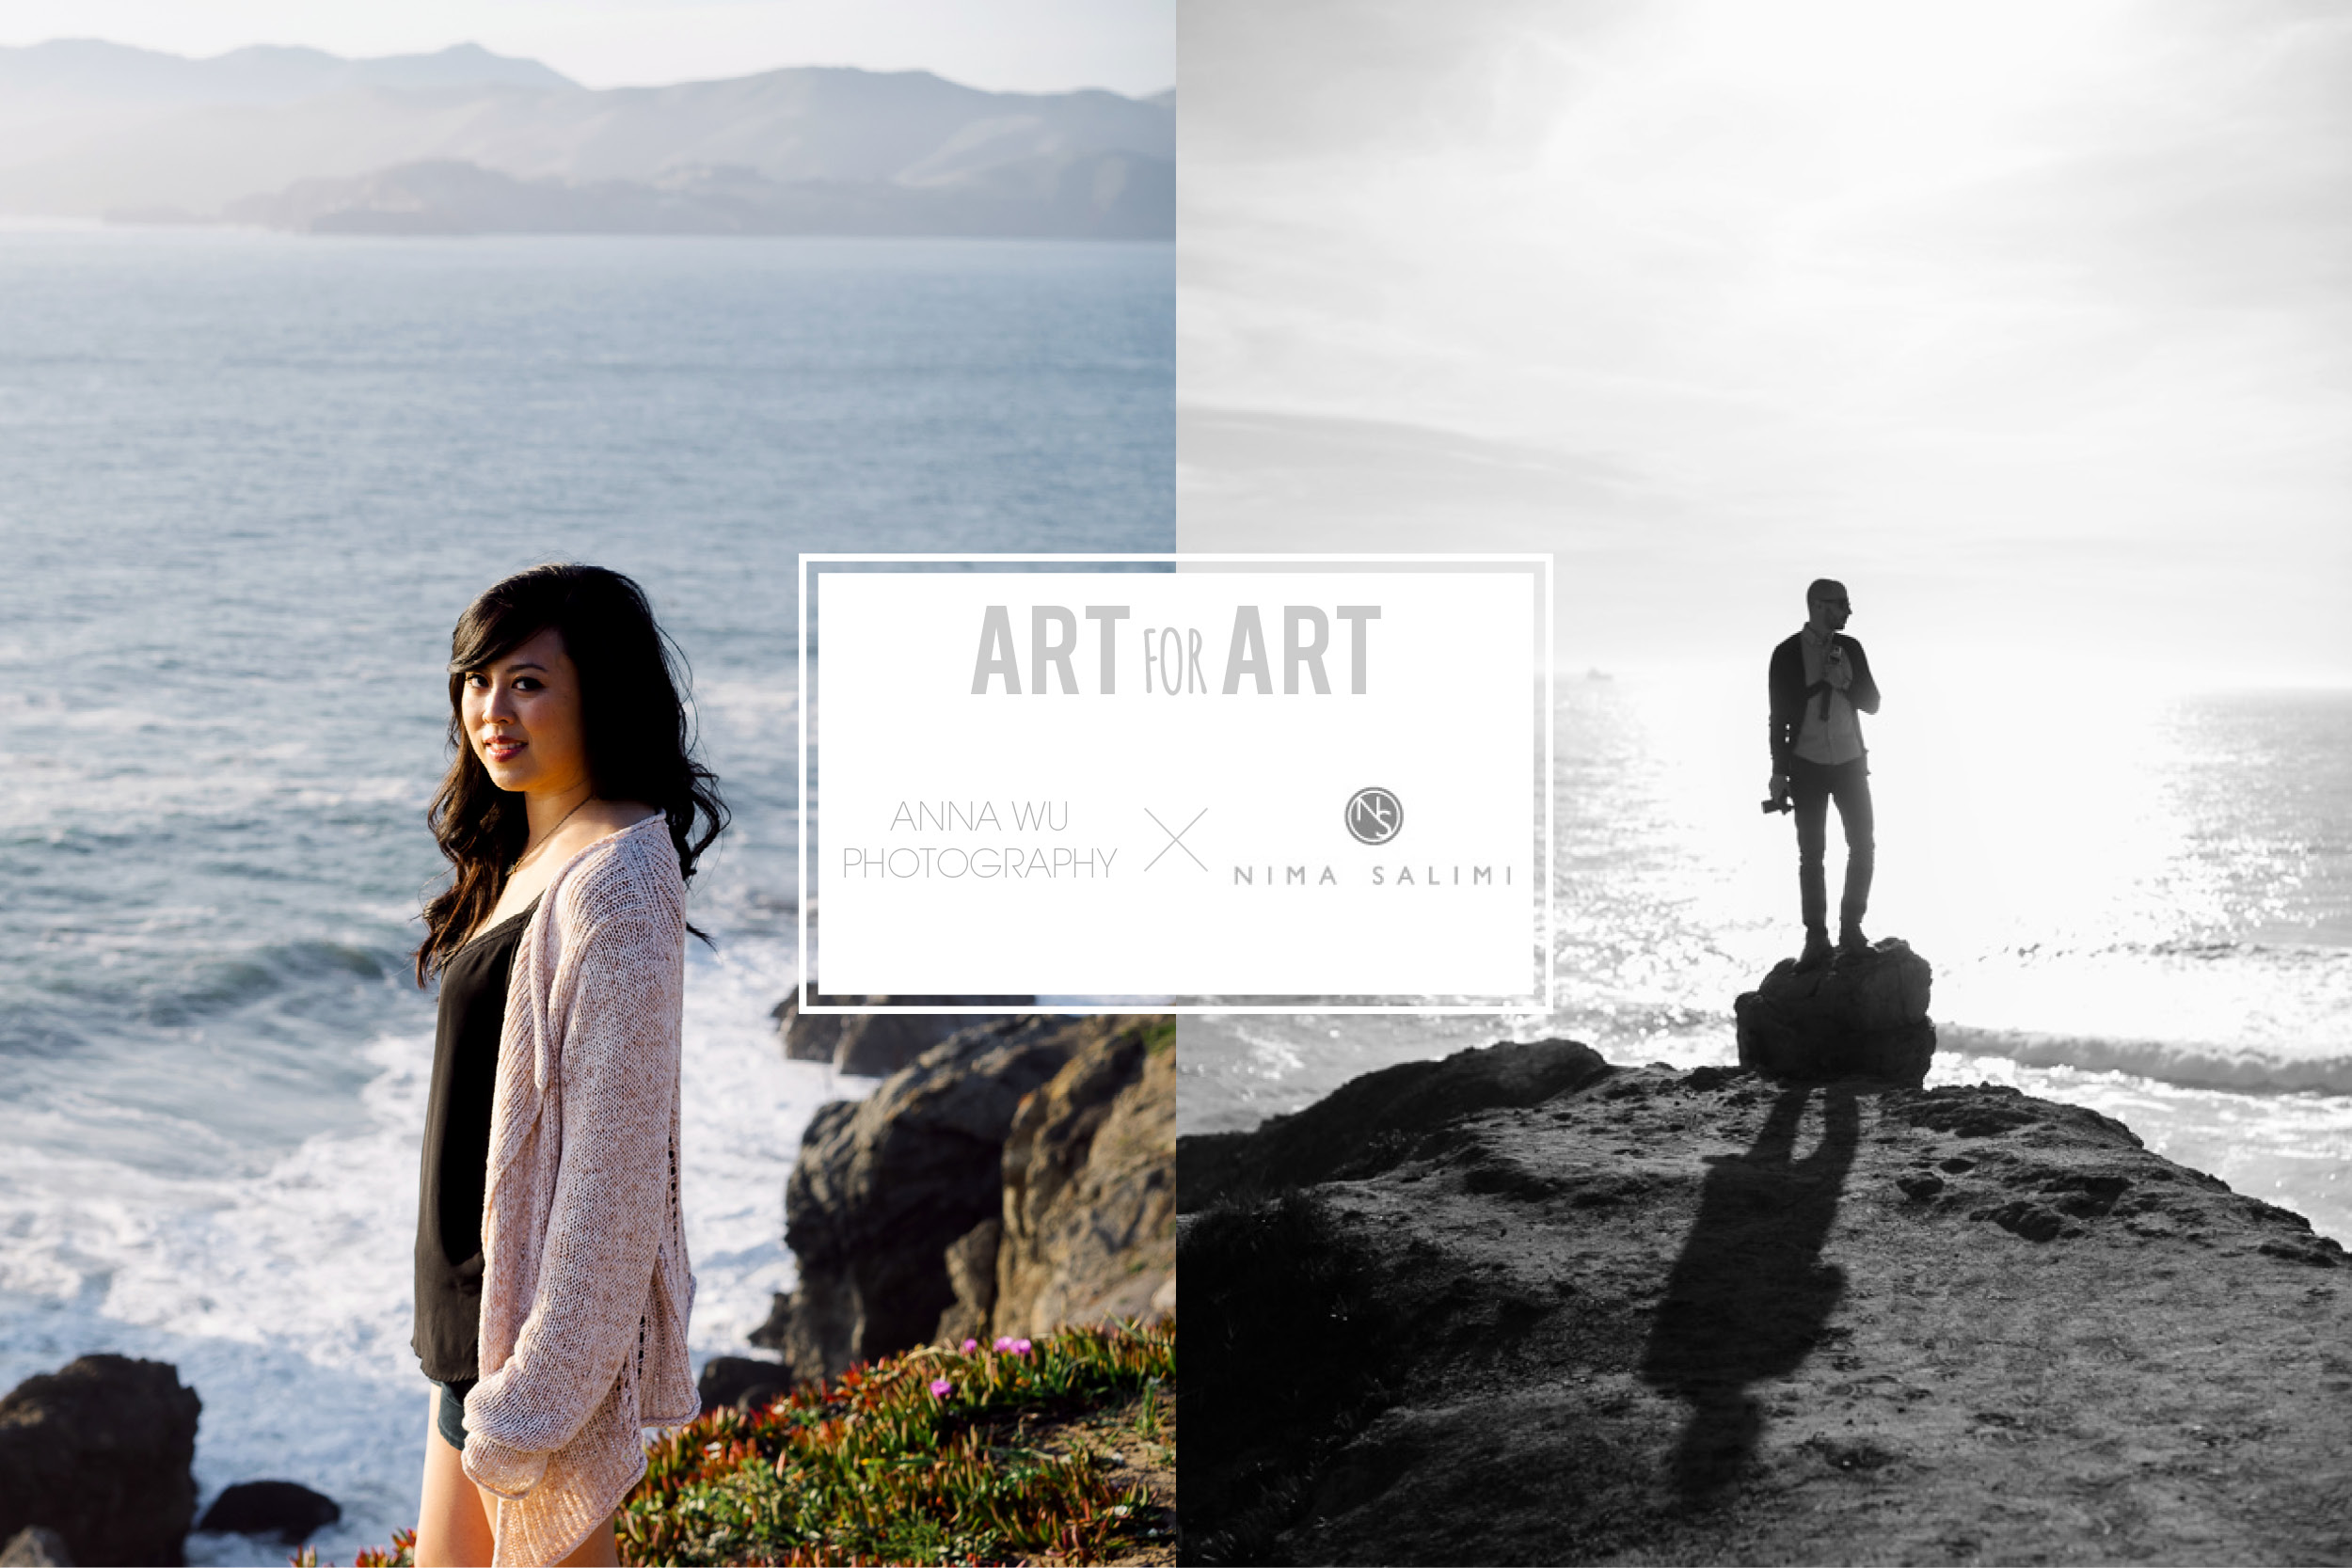 Anna Wu x Nima Salimi | Art for Art photographers portraits